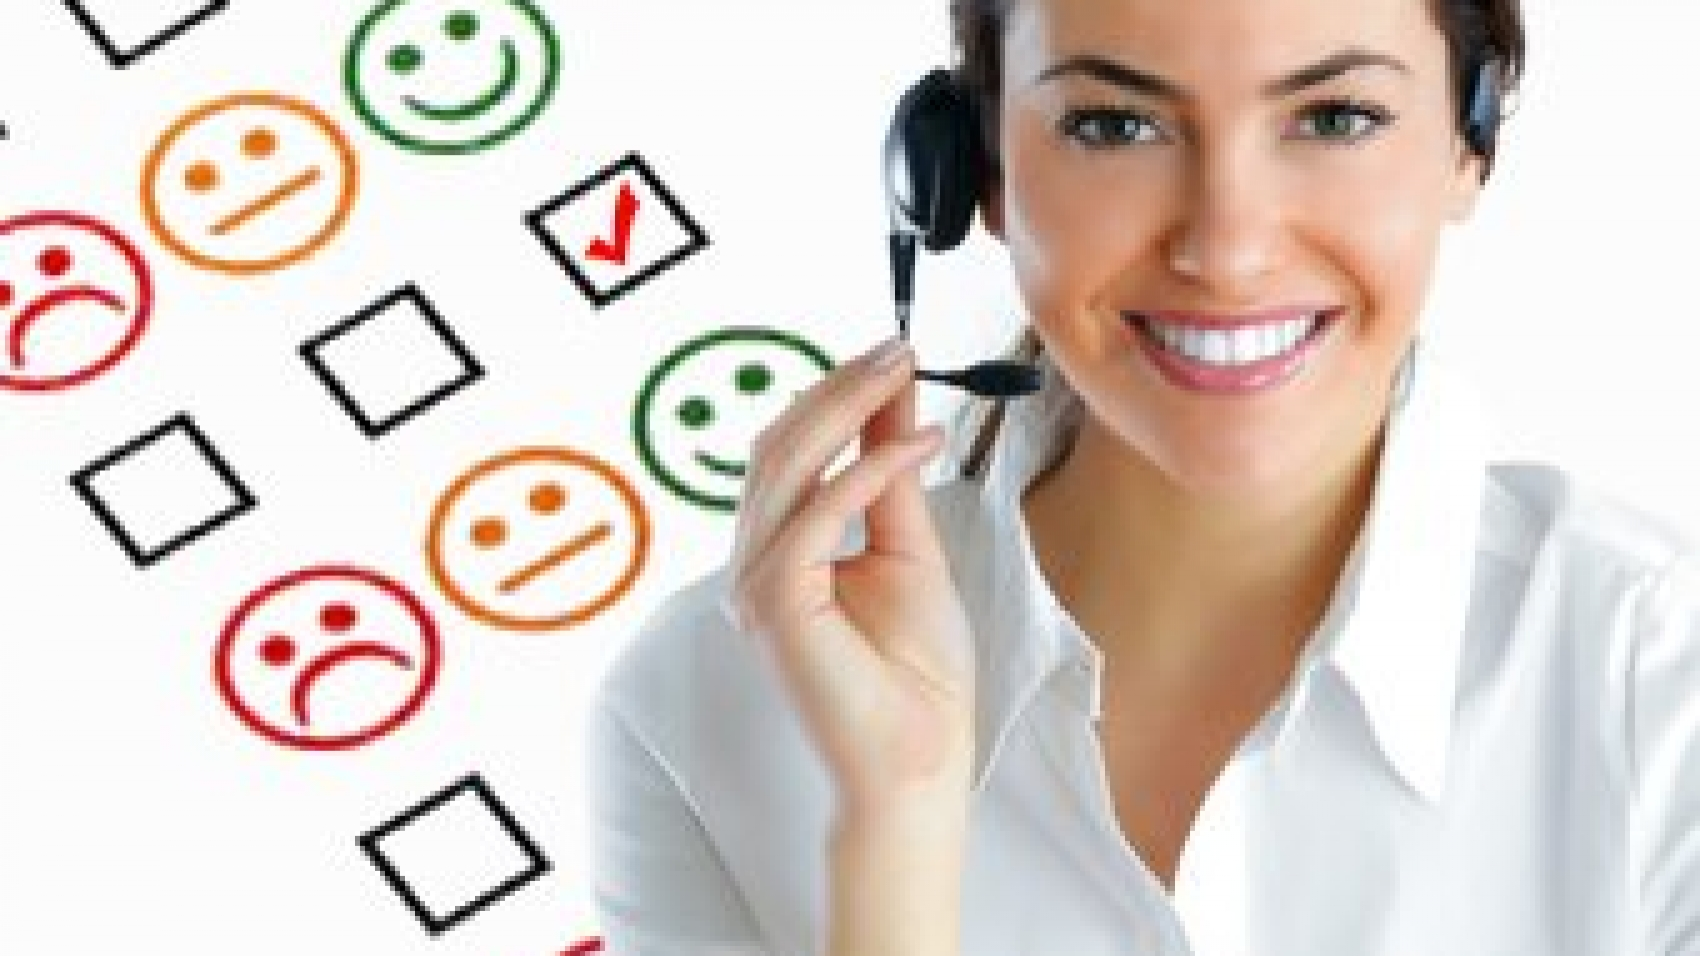 A smiling female outsource agent